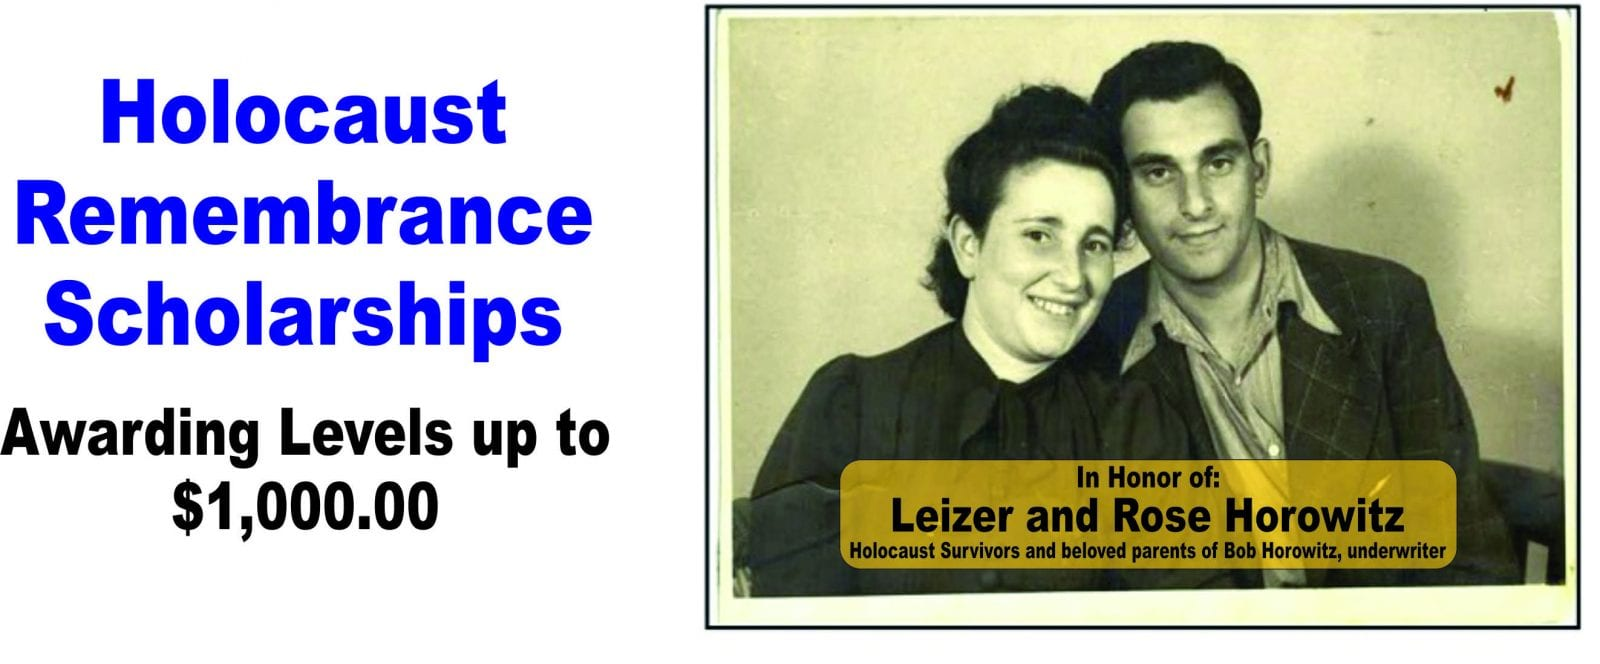 The Leizer and Rose Horowitz Holocaust Remembrance Association Scholarships